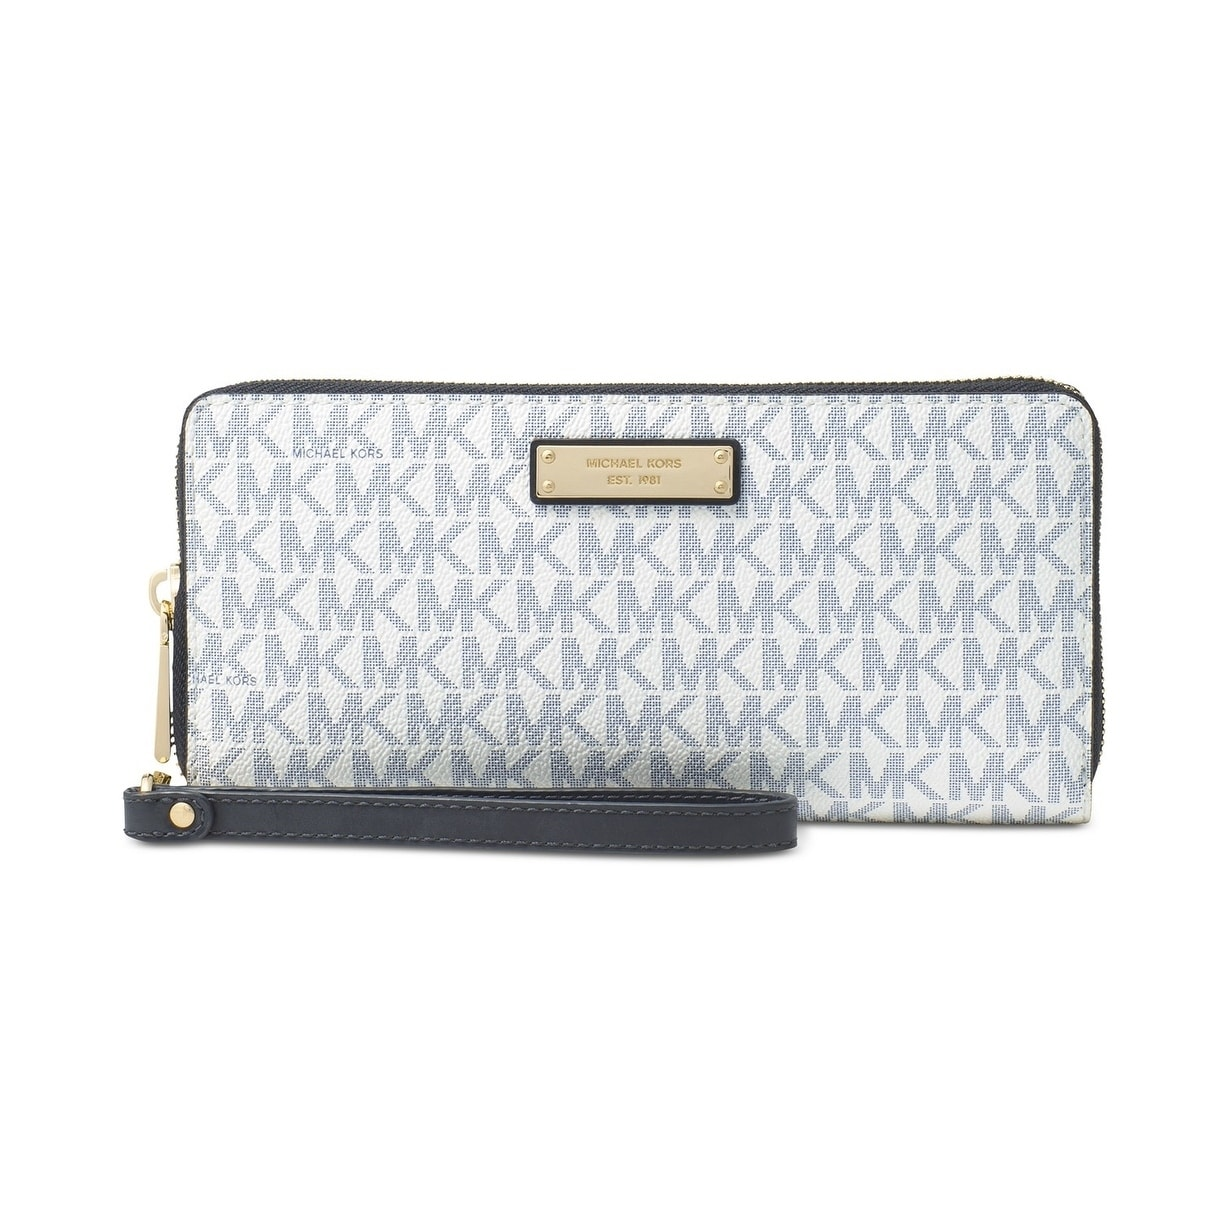 15c533189beb Shop MICHAEL Michael Kors Jet Set Item Travel Continental Wallet Optic  White/navy - Free Shipping Today - Overstock - 21257504